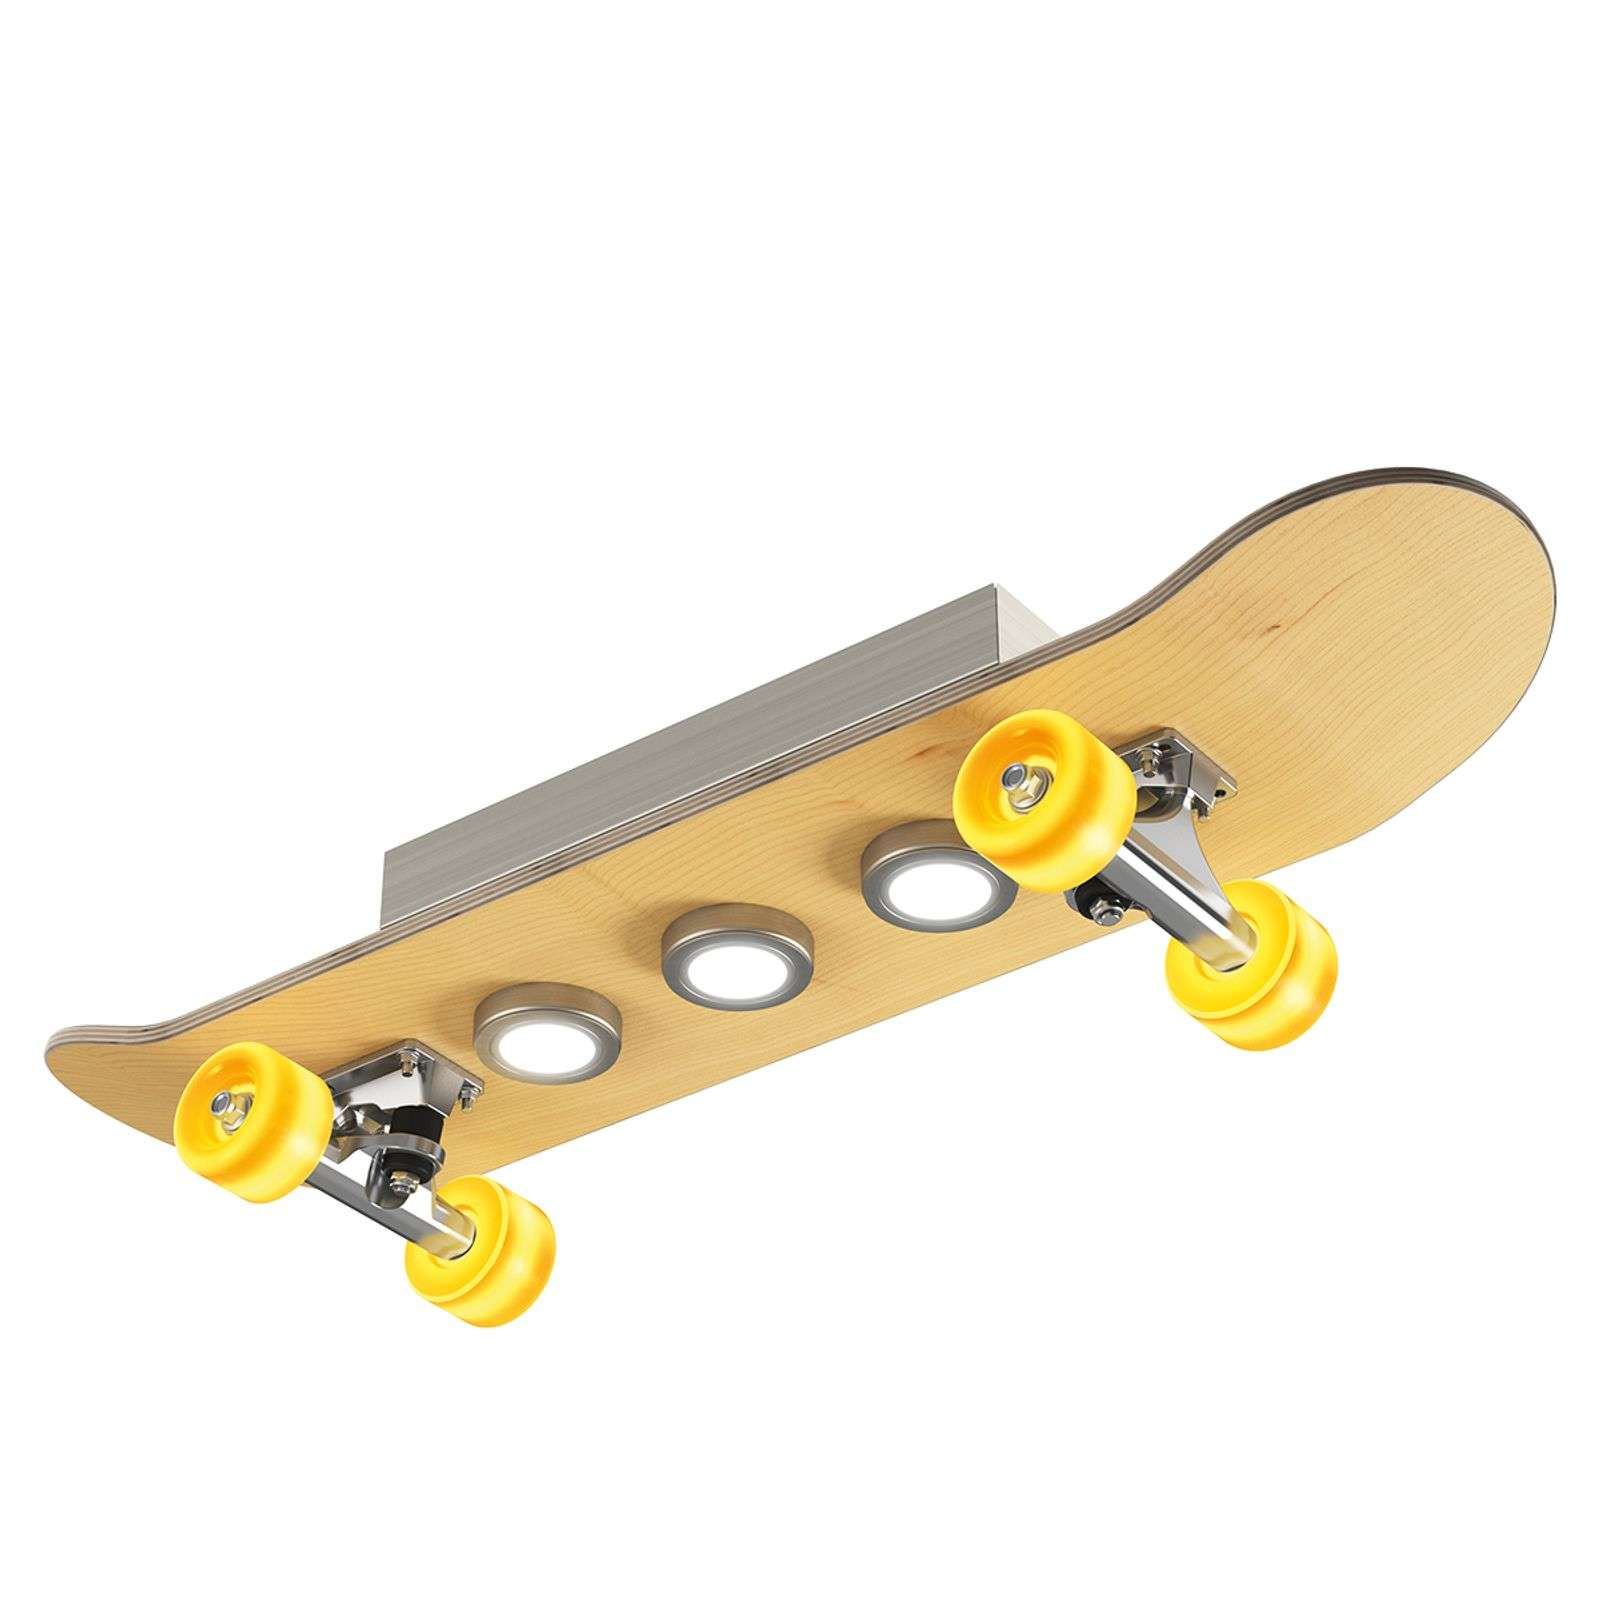 Plafonnier LED Light Cruiser en skateboard